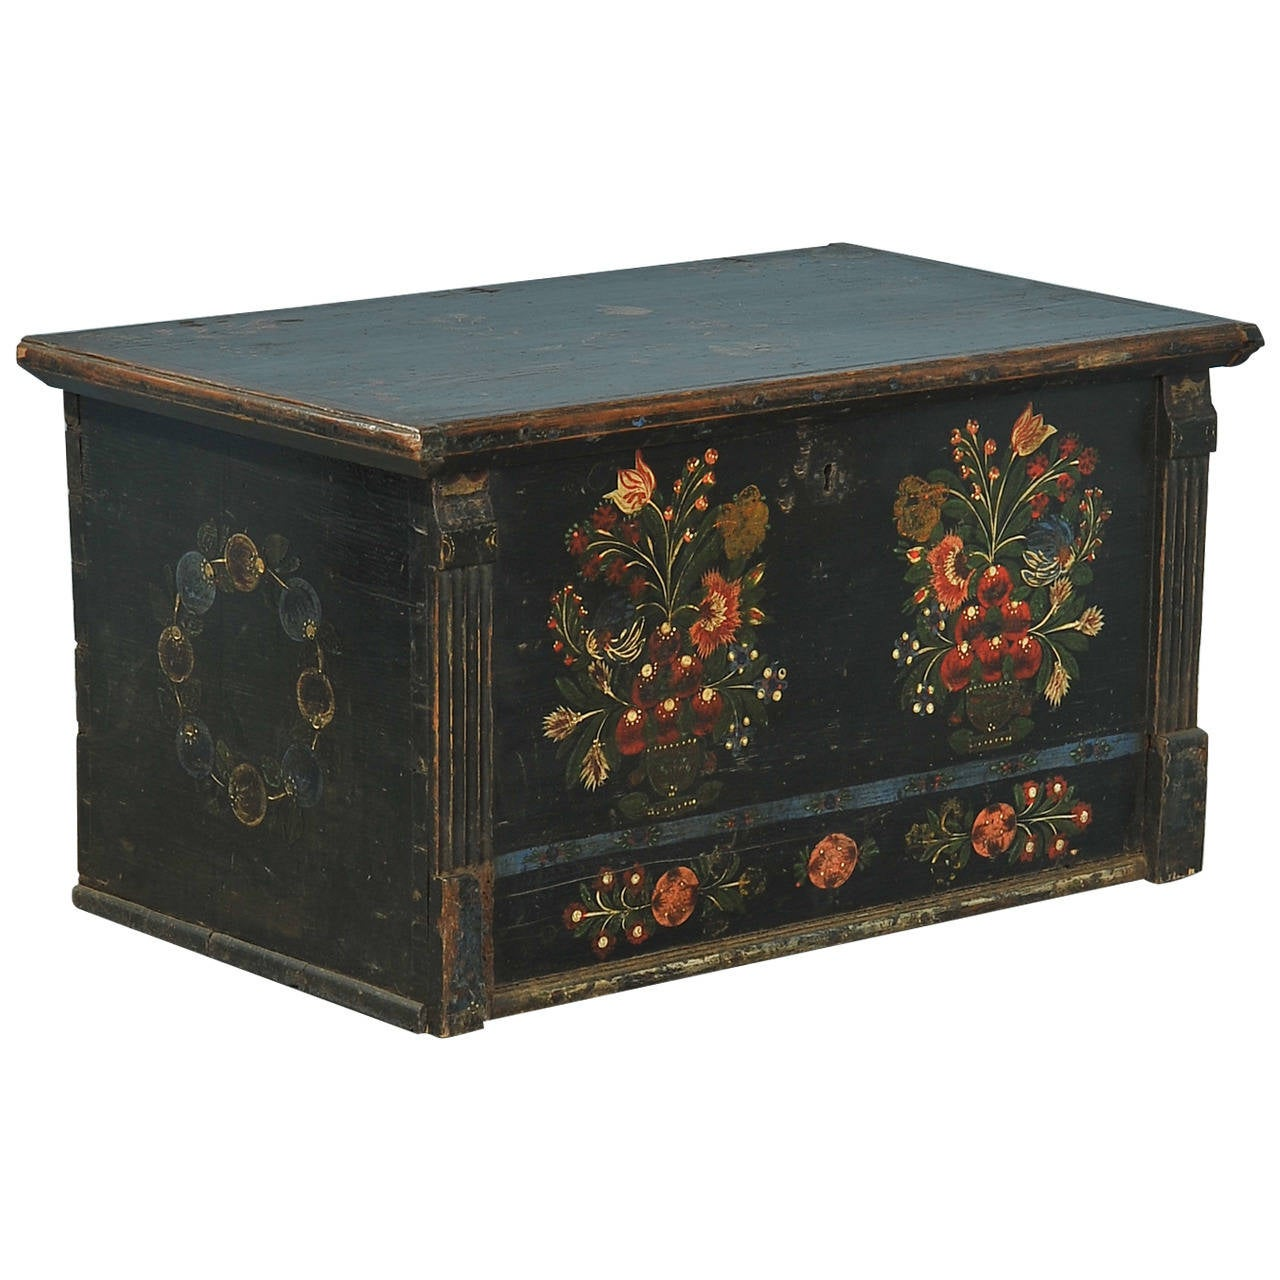 Antique Original Black Painted Flat Top Trunk Perfect Coffee Table Circa 1840 At 1stdibs